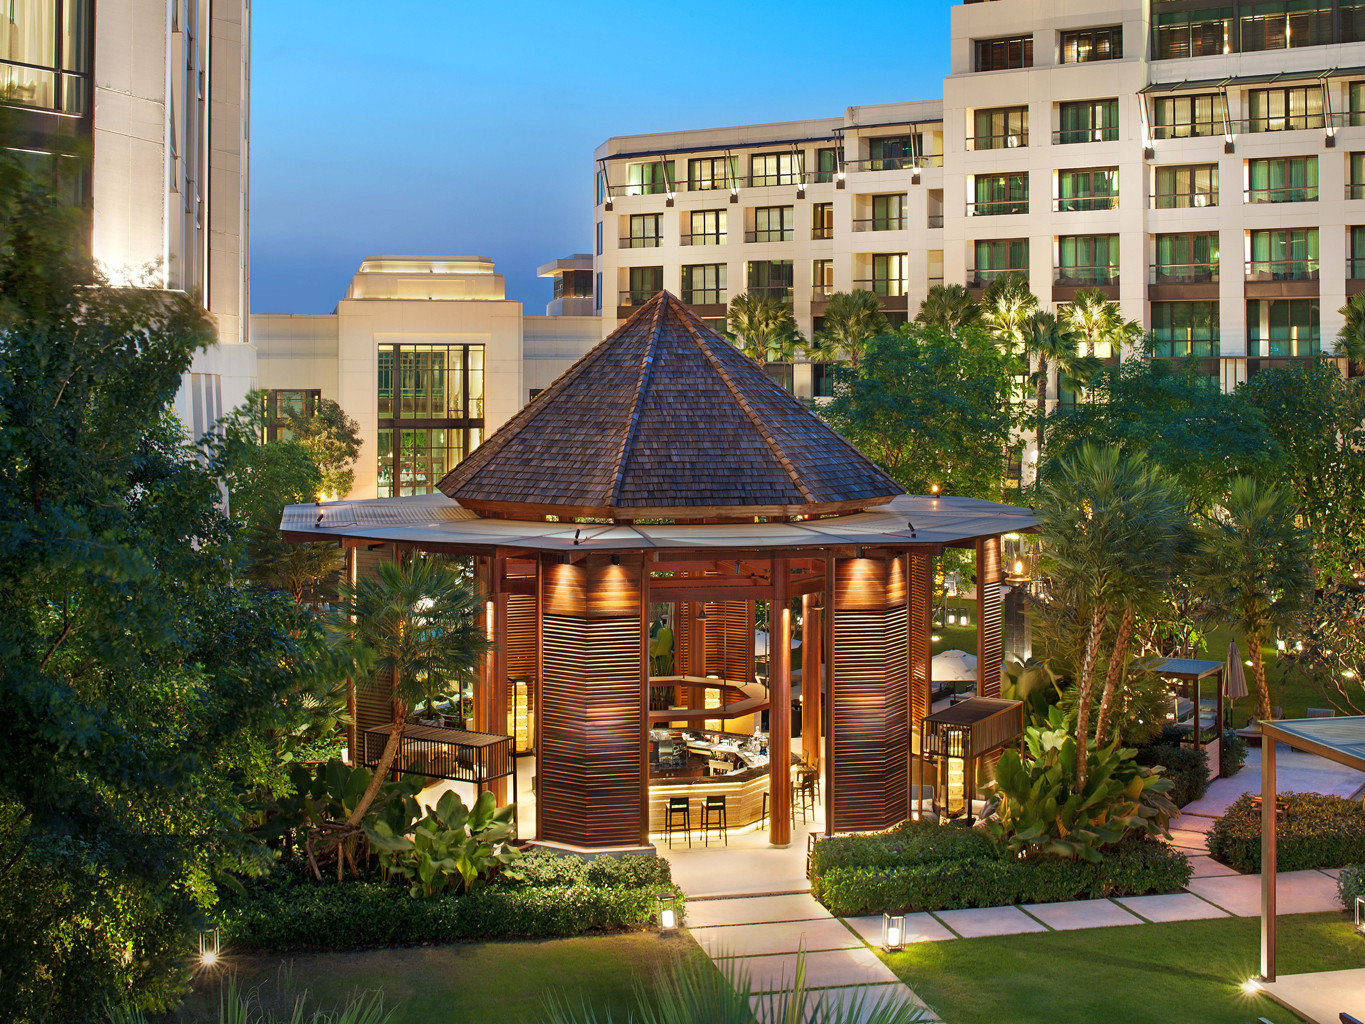 Bar City Modern Resort tree building house Architecture home condominium mansion outdoor structure palace